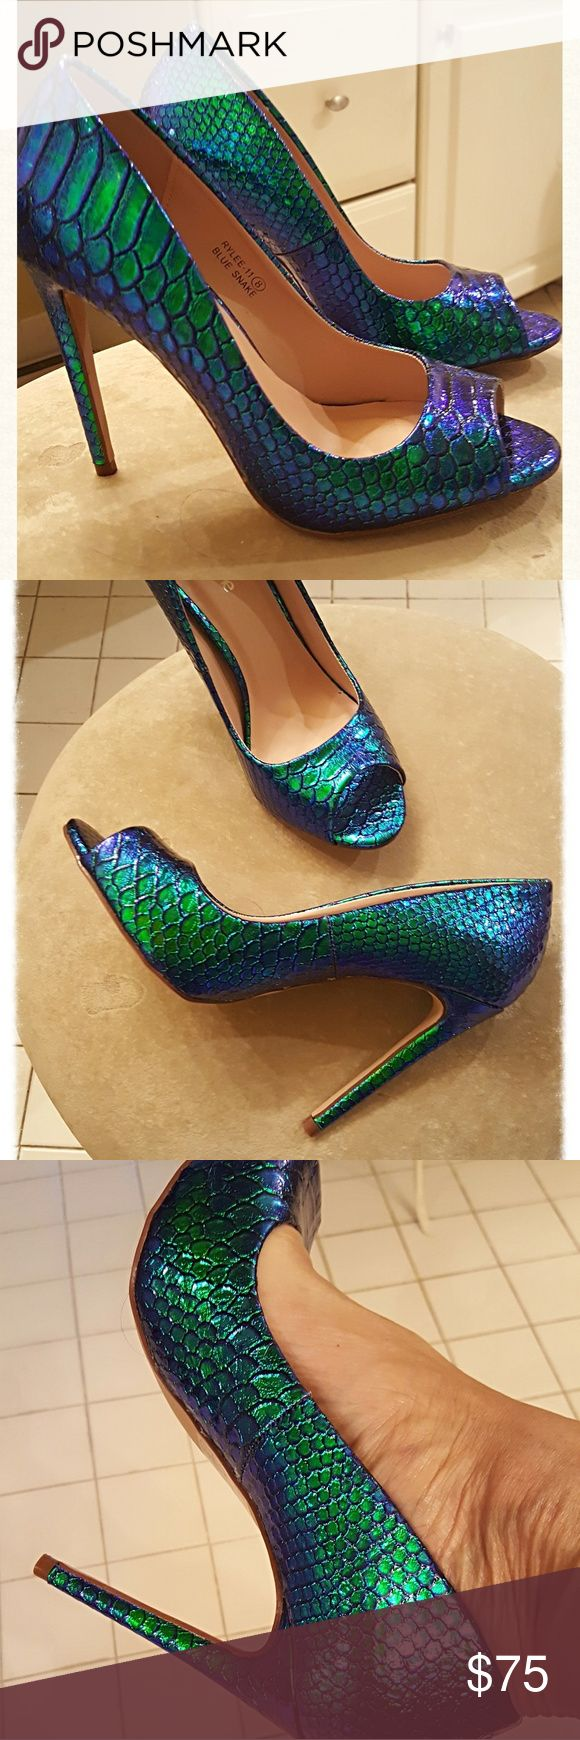 """??????MERMAID OMBRE HIGH HEELS?????? These shoes are truly made for the High Heel Diva!???? Iridescent hologram colors range from turquoise to purple. Heel is 4-3/4 """". They run 1/2 size small. NIB.?????? Price is firm.?????? Shoes Heels"""